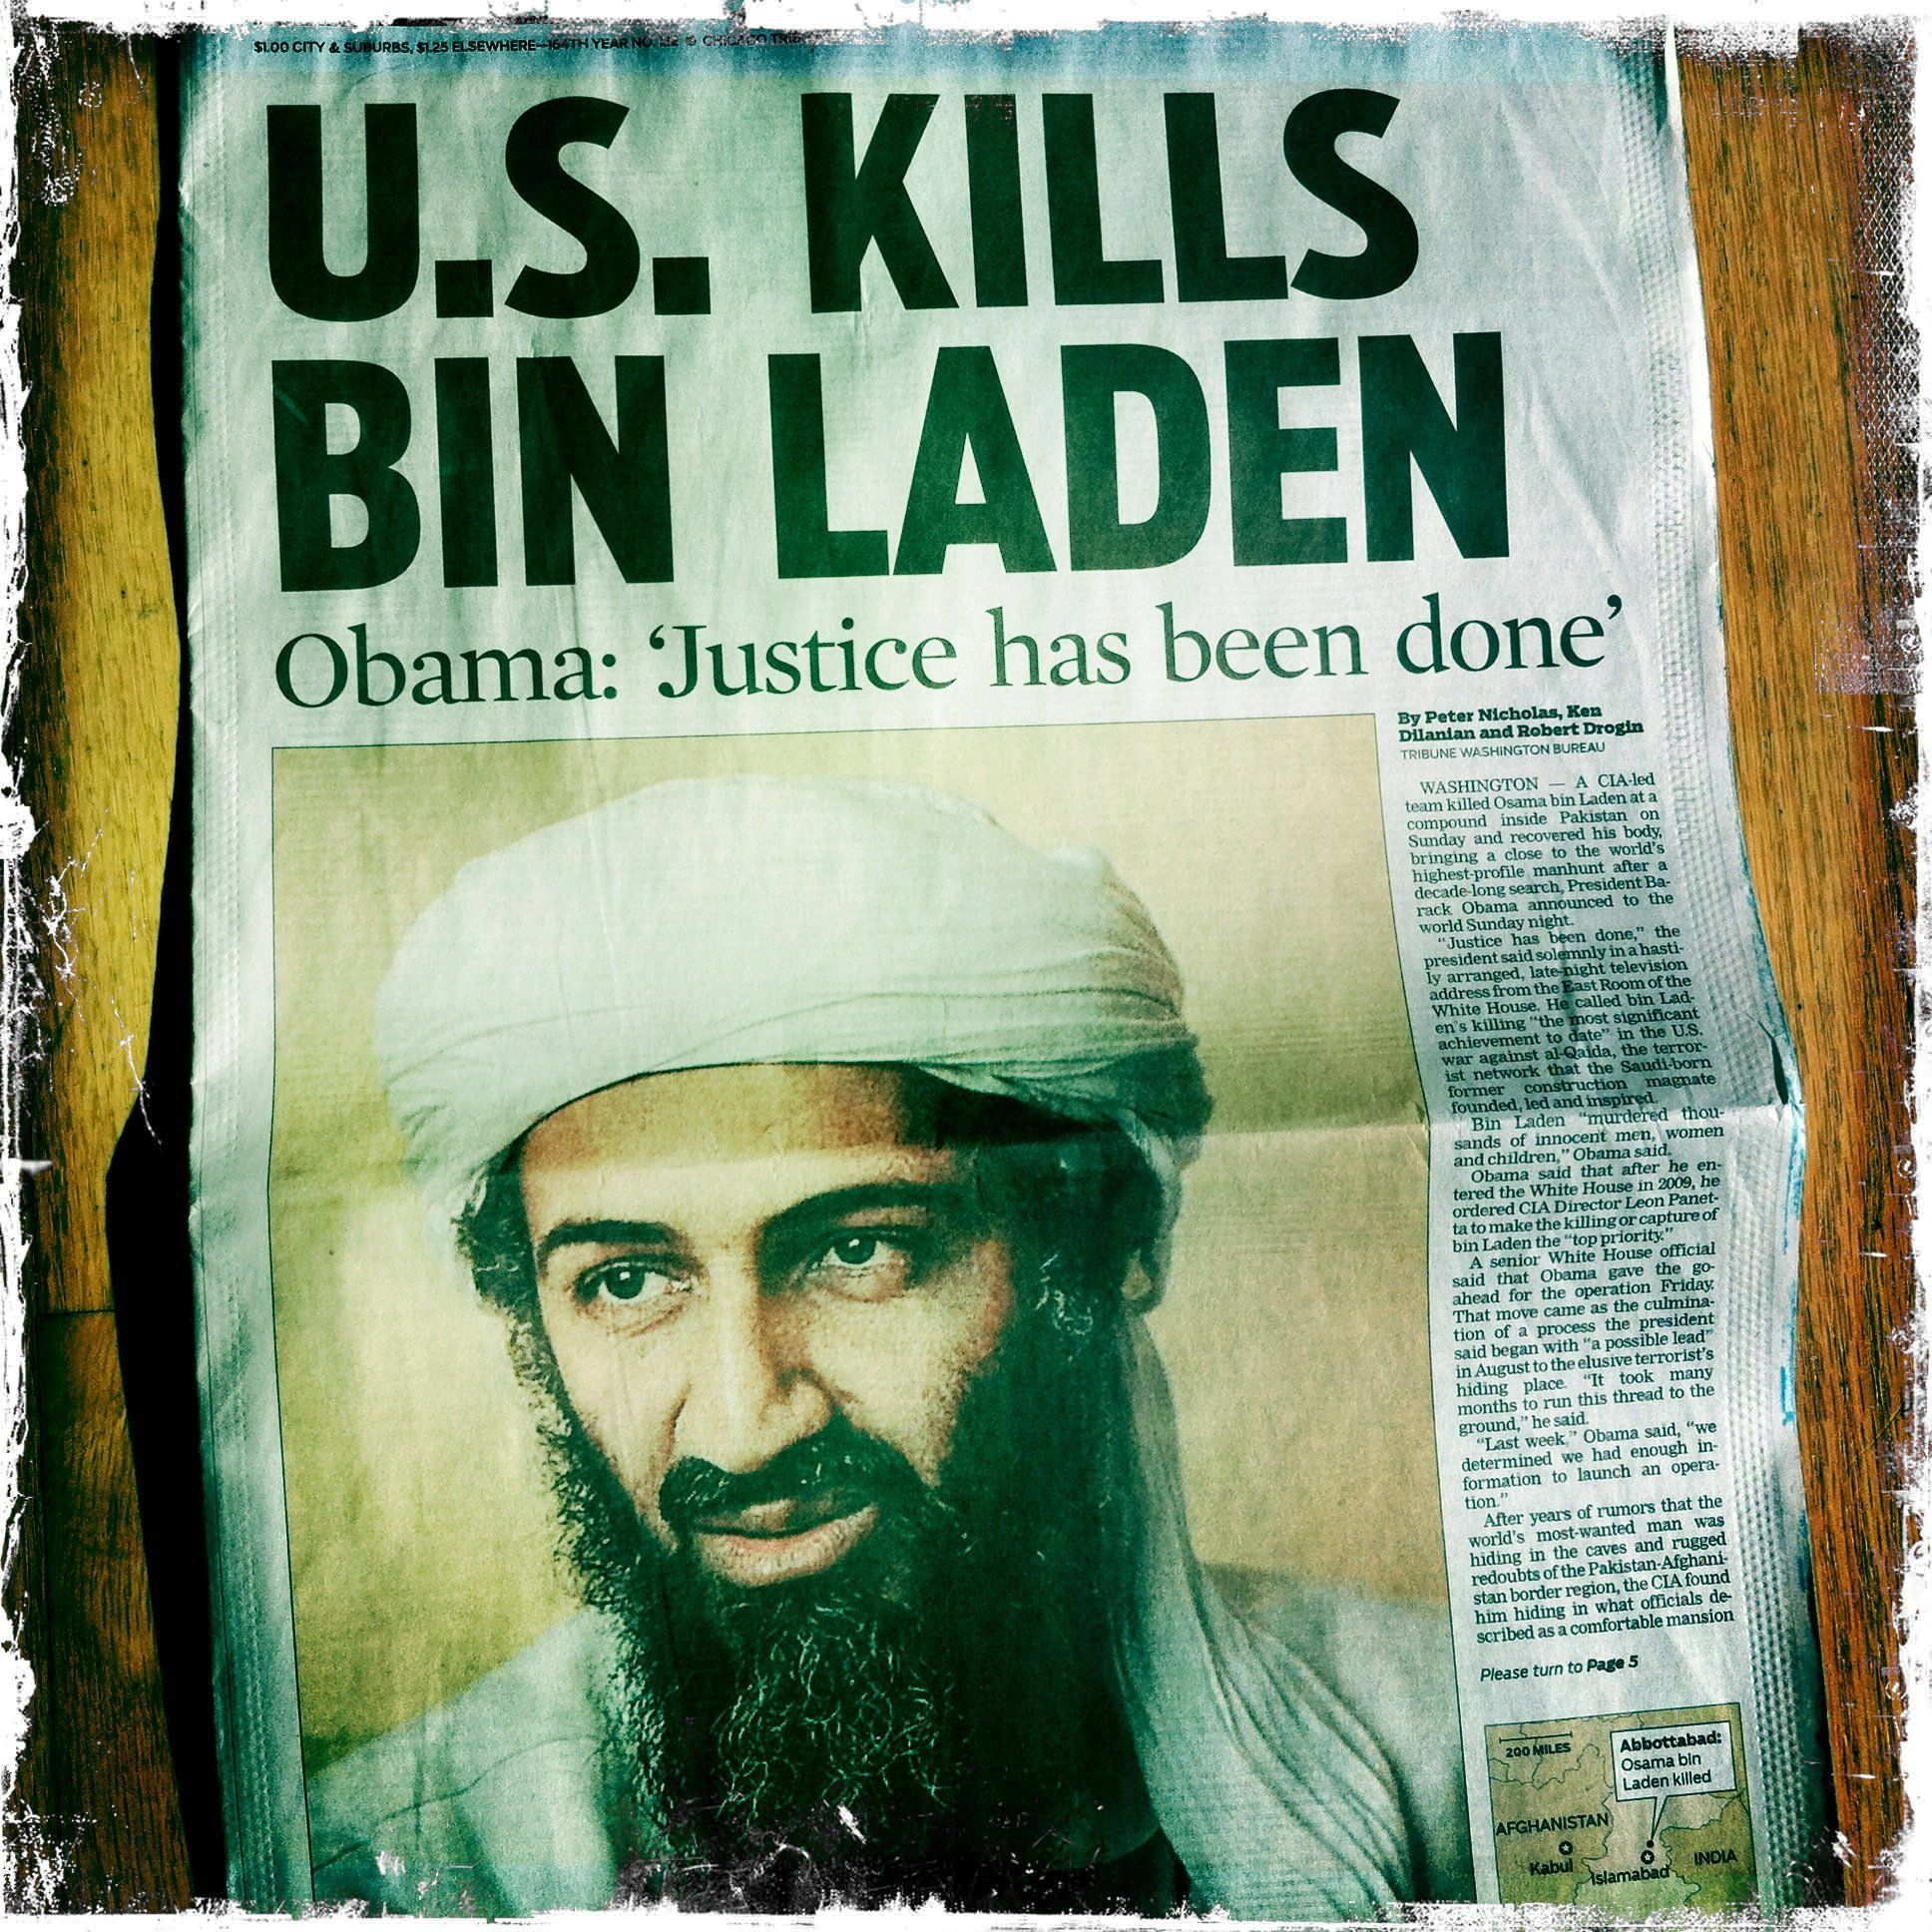 Front page of the Chicago Tribune the day after Osama bin Laden was killed